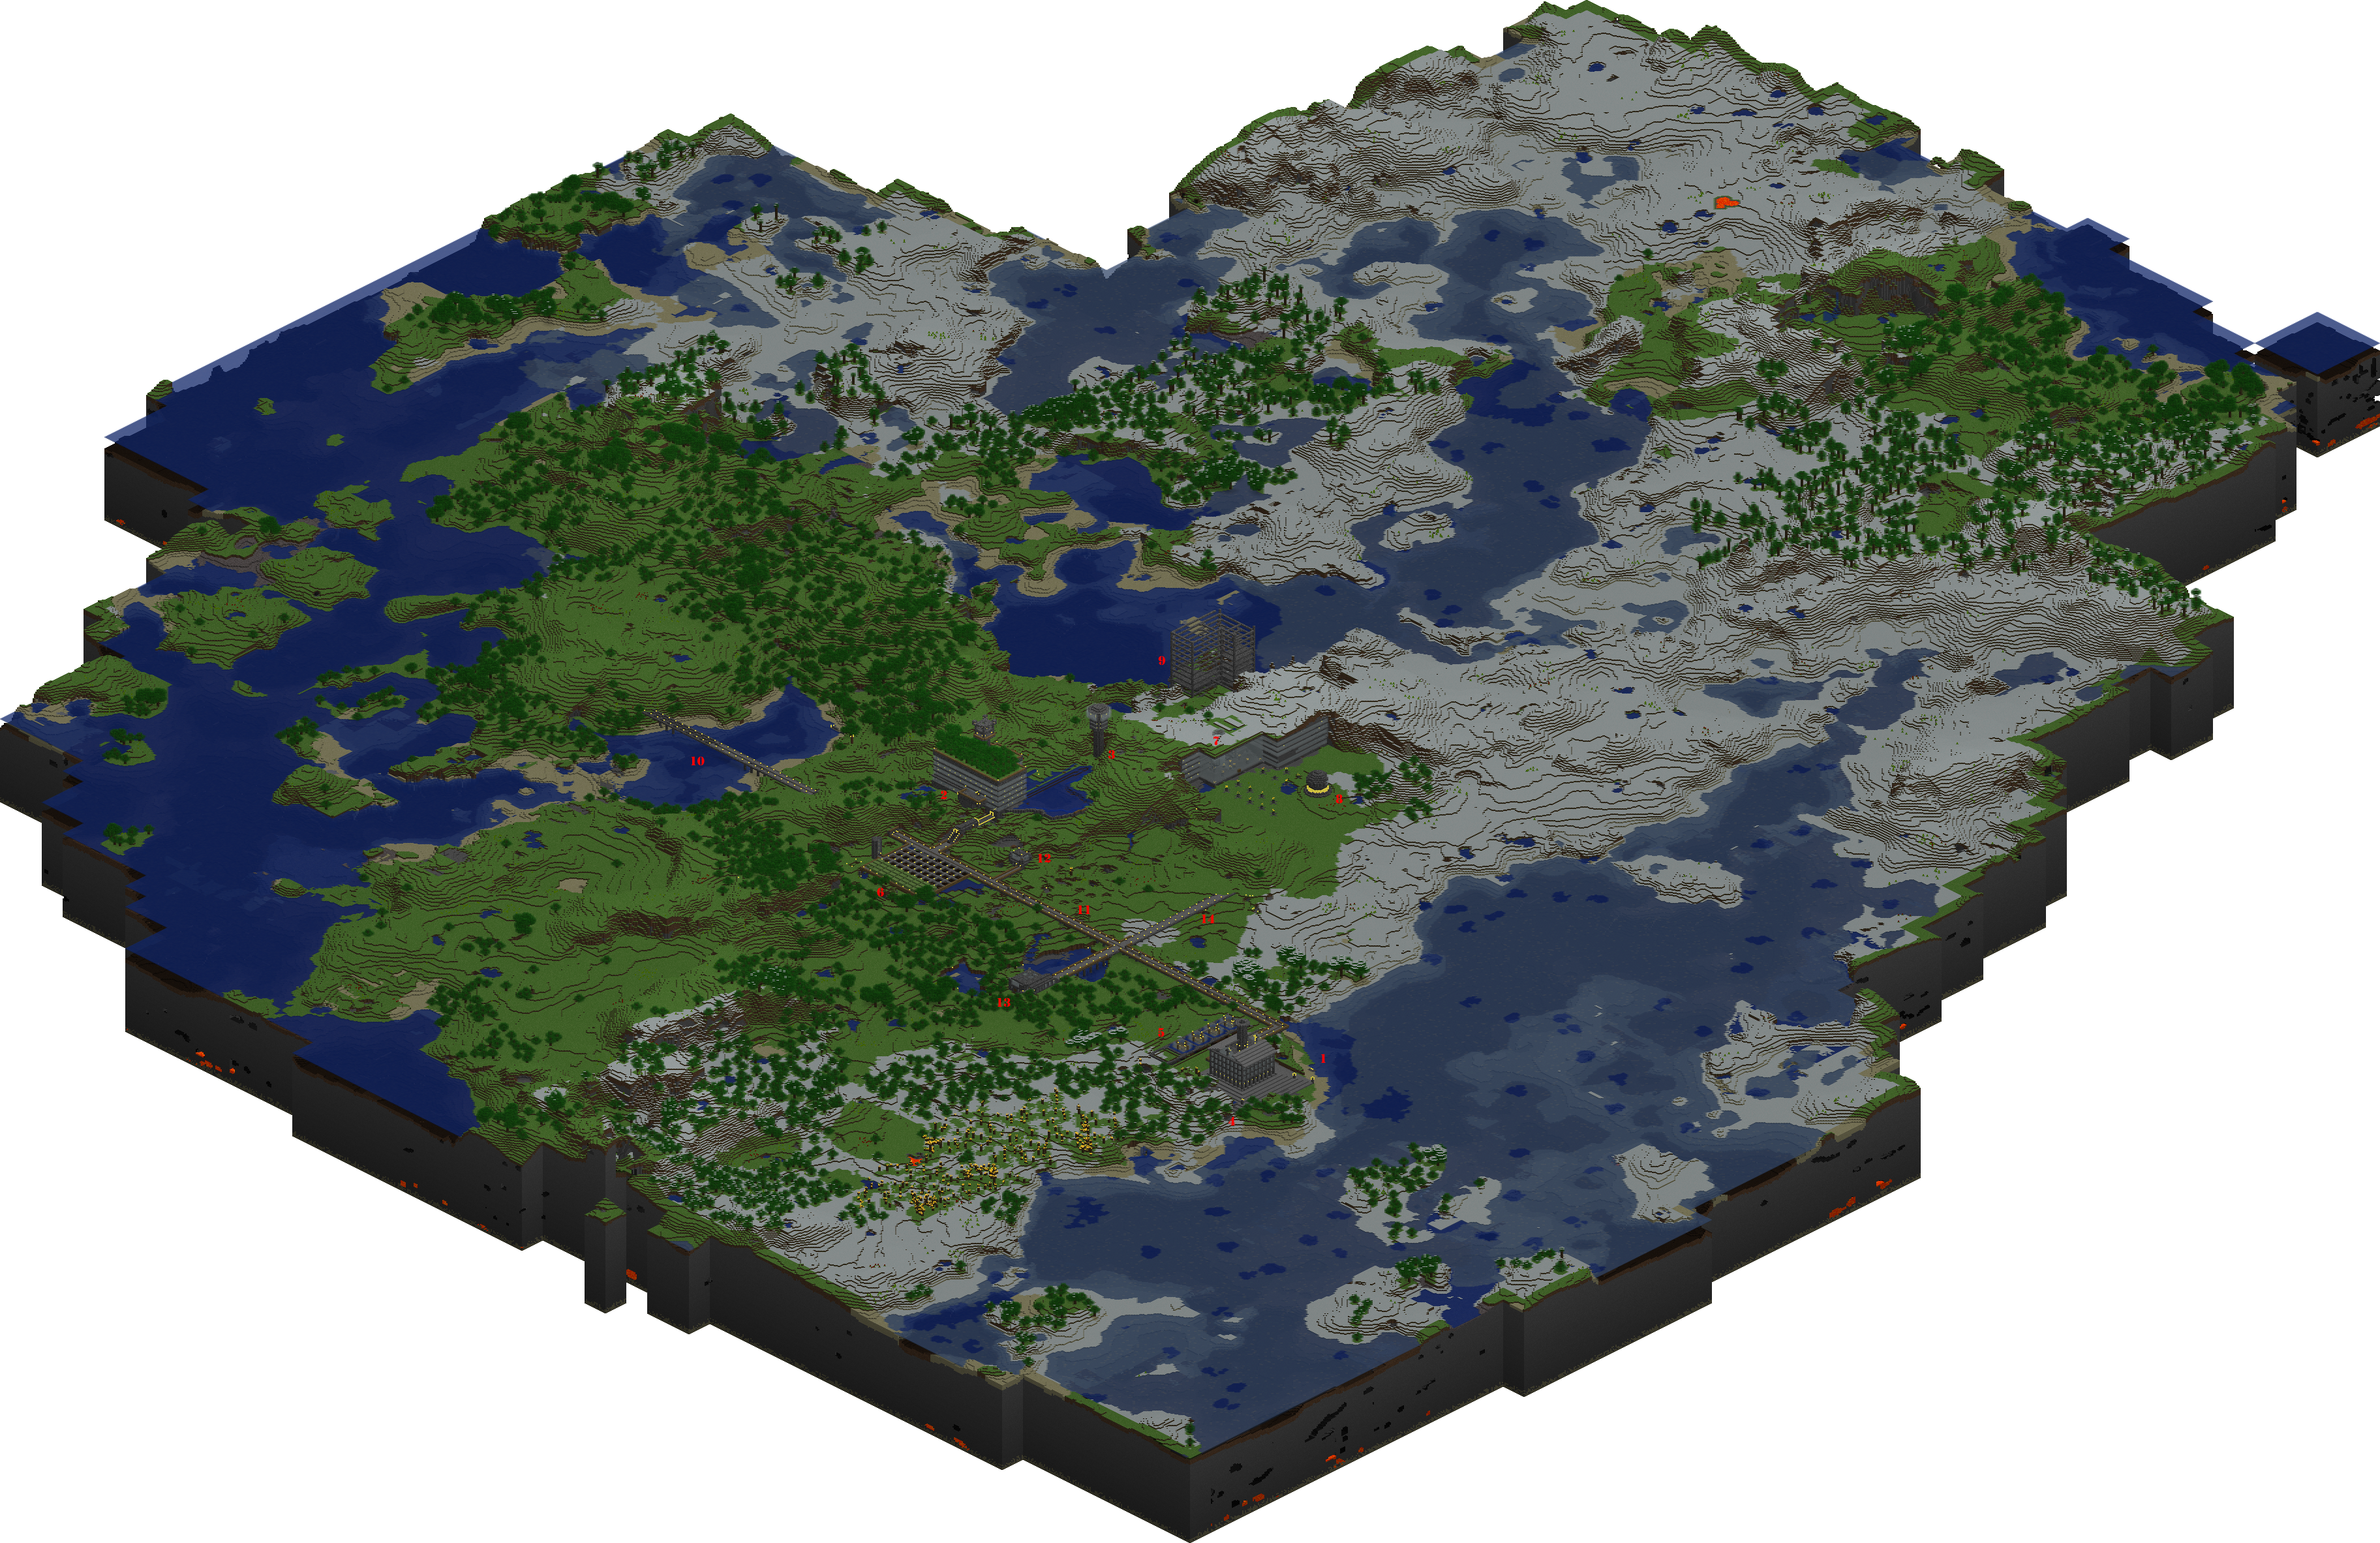 Minecraft Map By Tounushi On DeviantArt - Mapas para minecraft 1 11 2